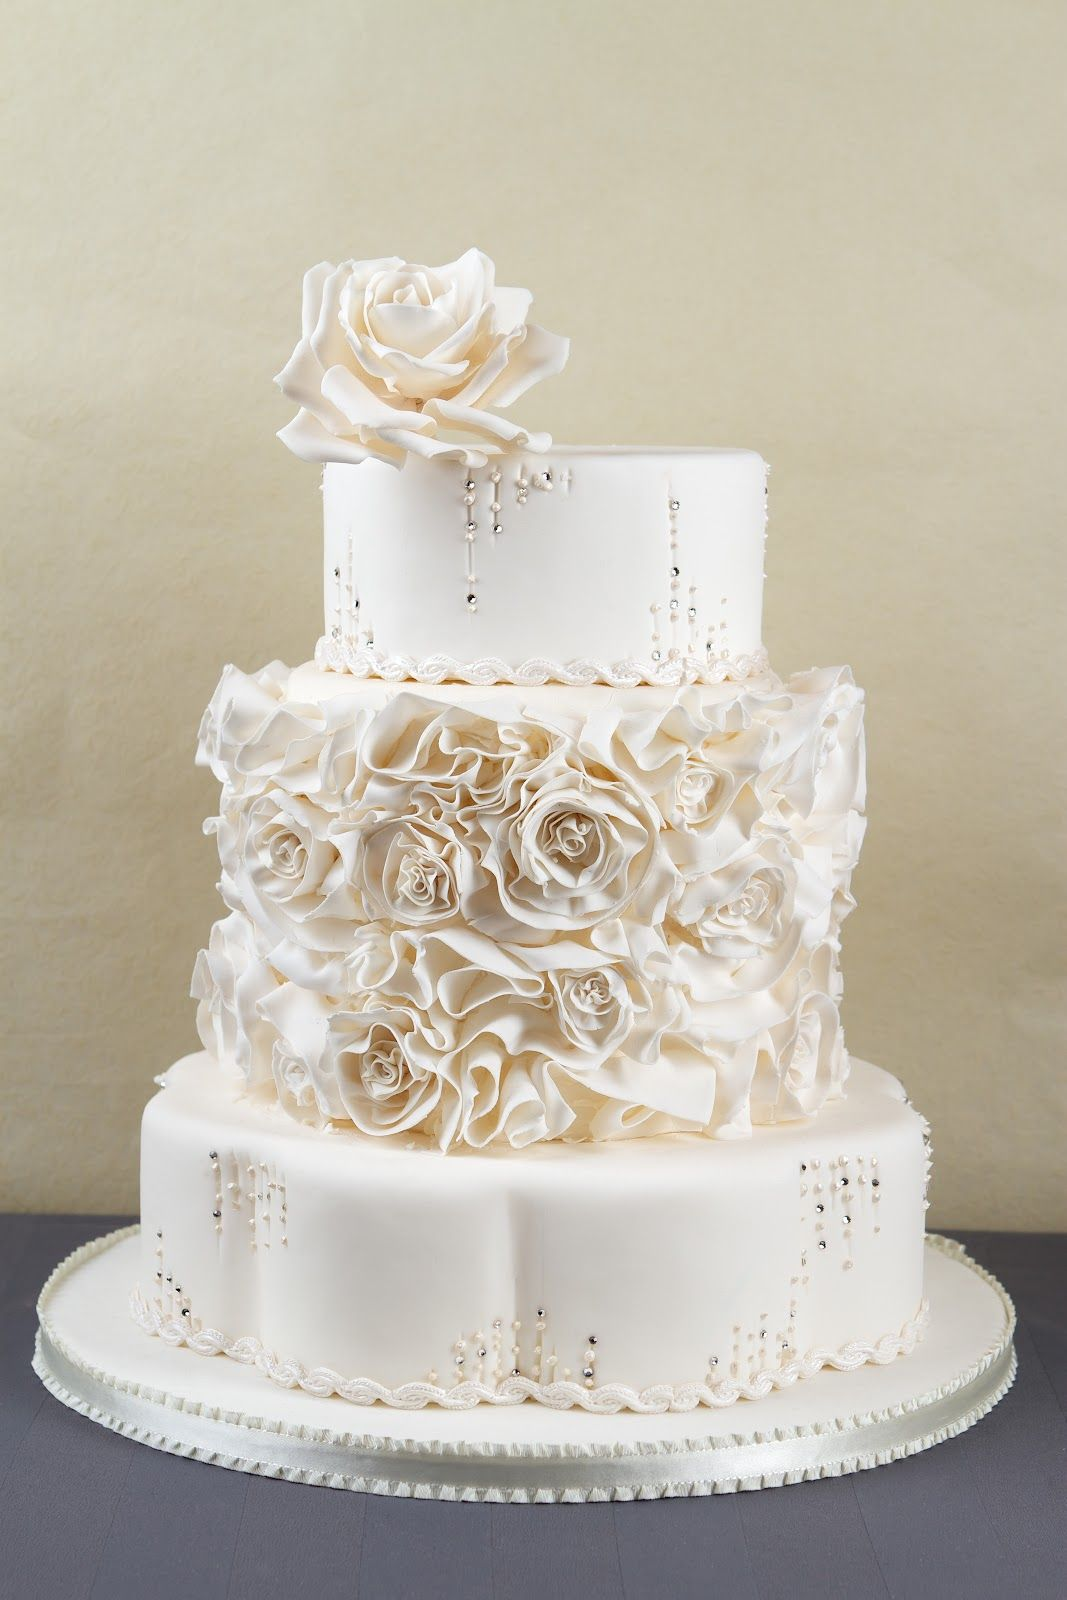 Rose & Crystal Wedding Cake | Cakes Beautiful Cakes for the ...